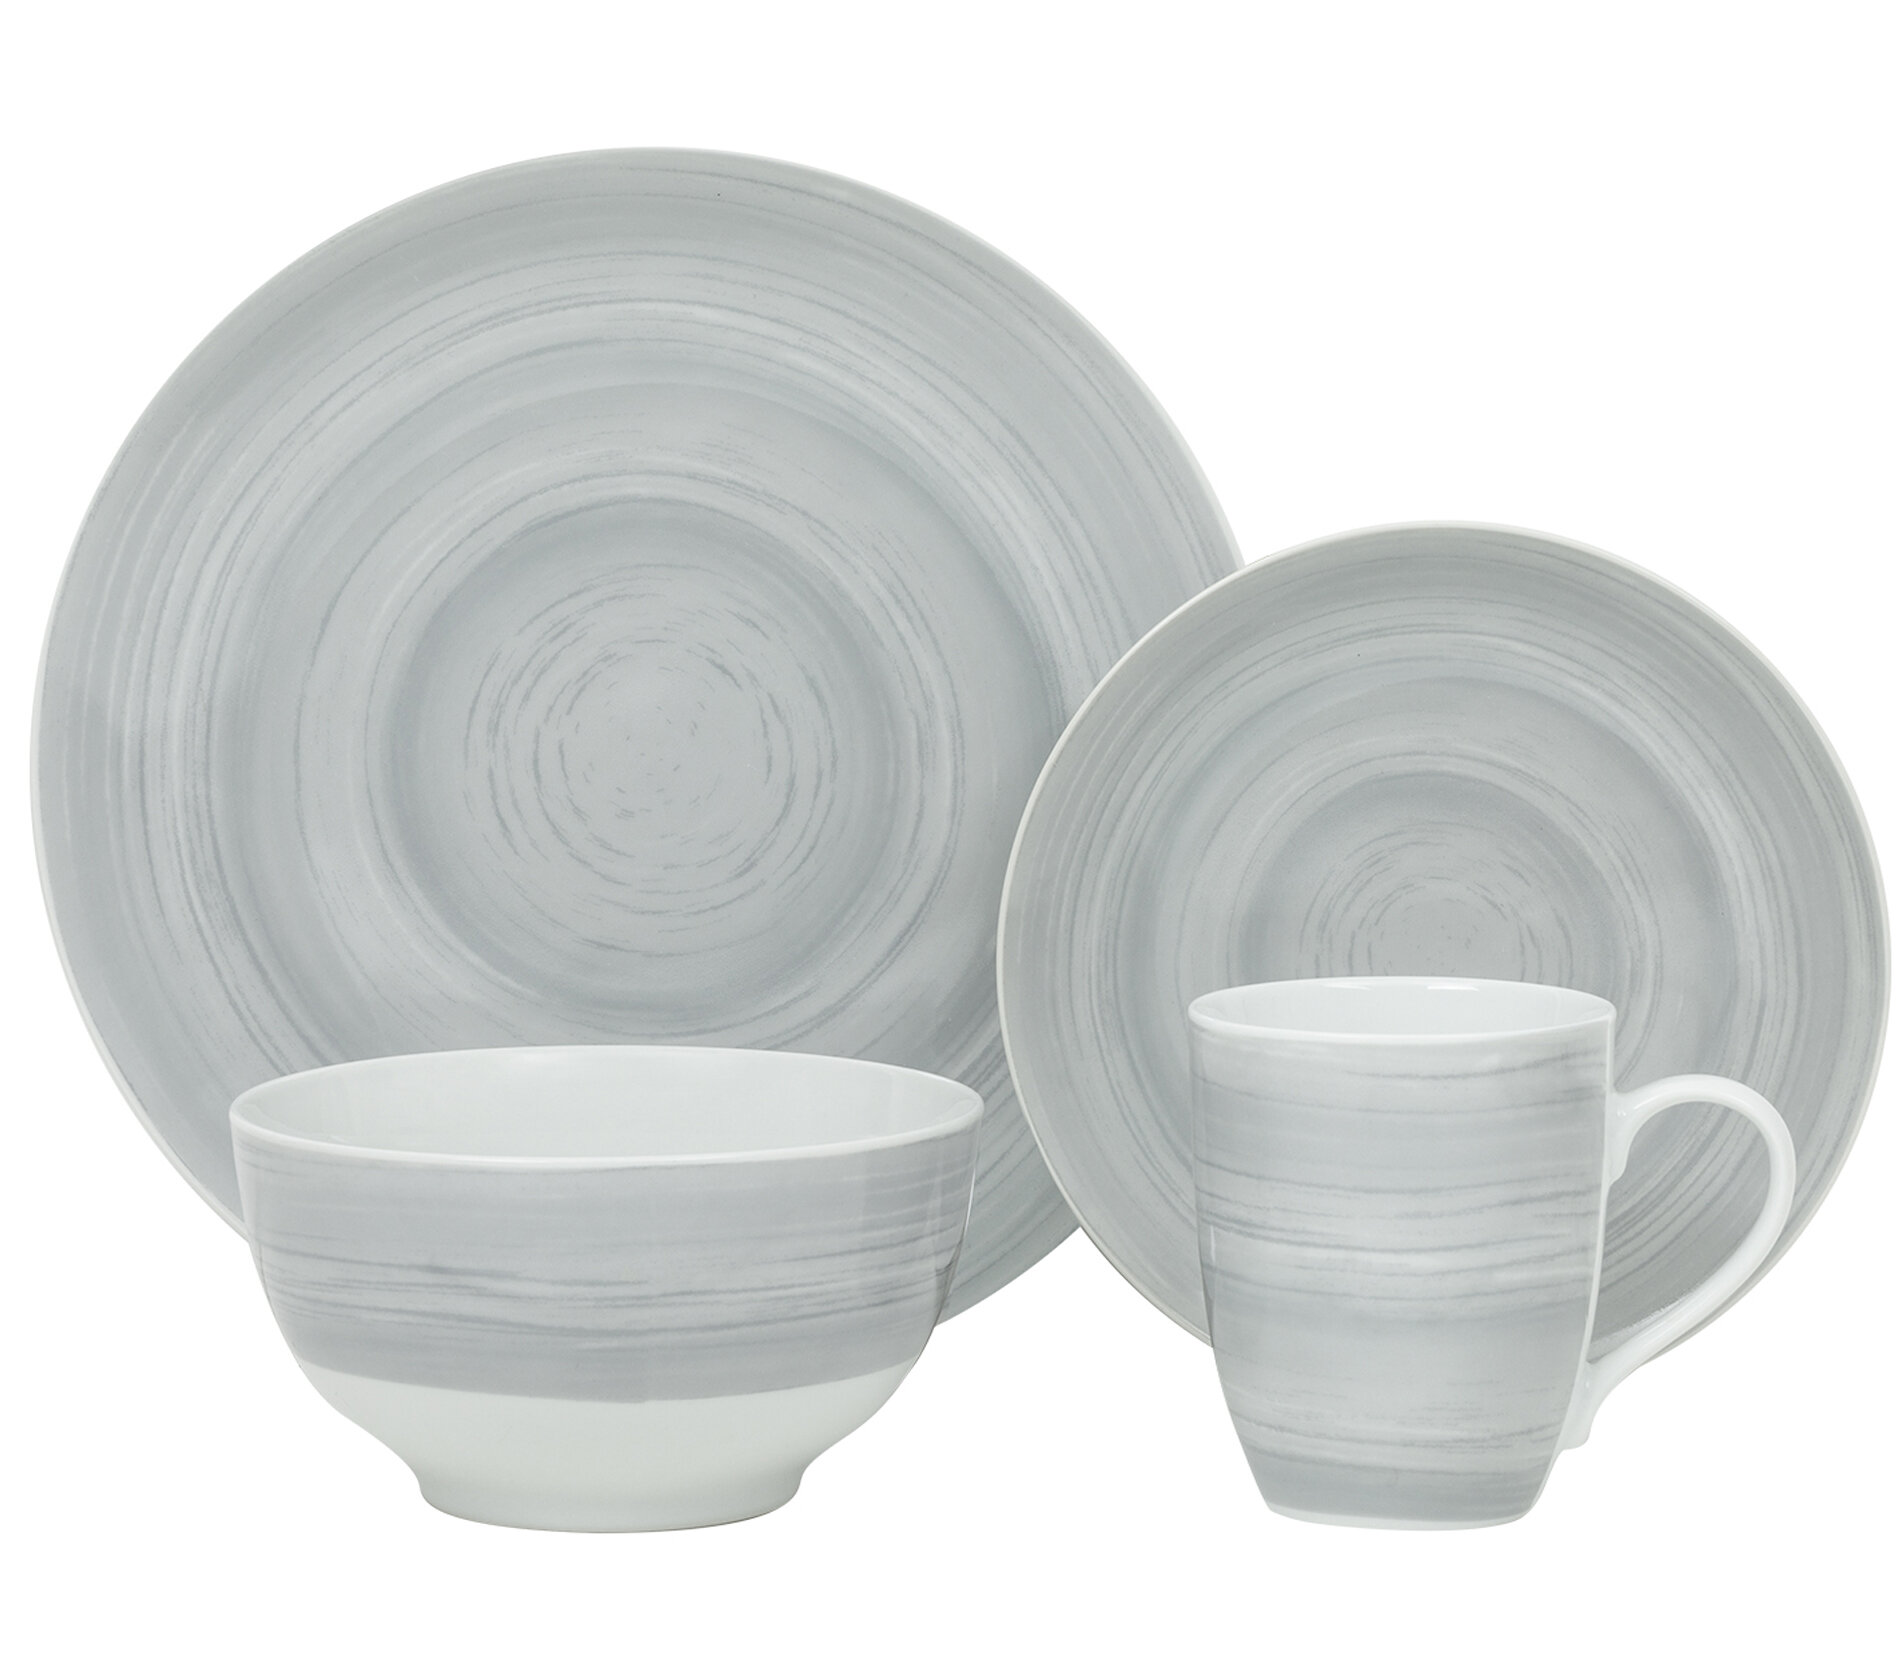 Gourmet Whiteware Collection White 18 Piece Rim Dinnerware Set